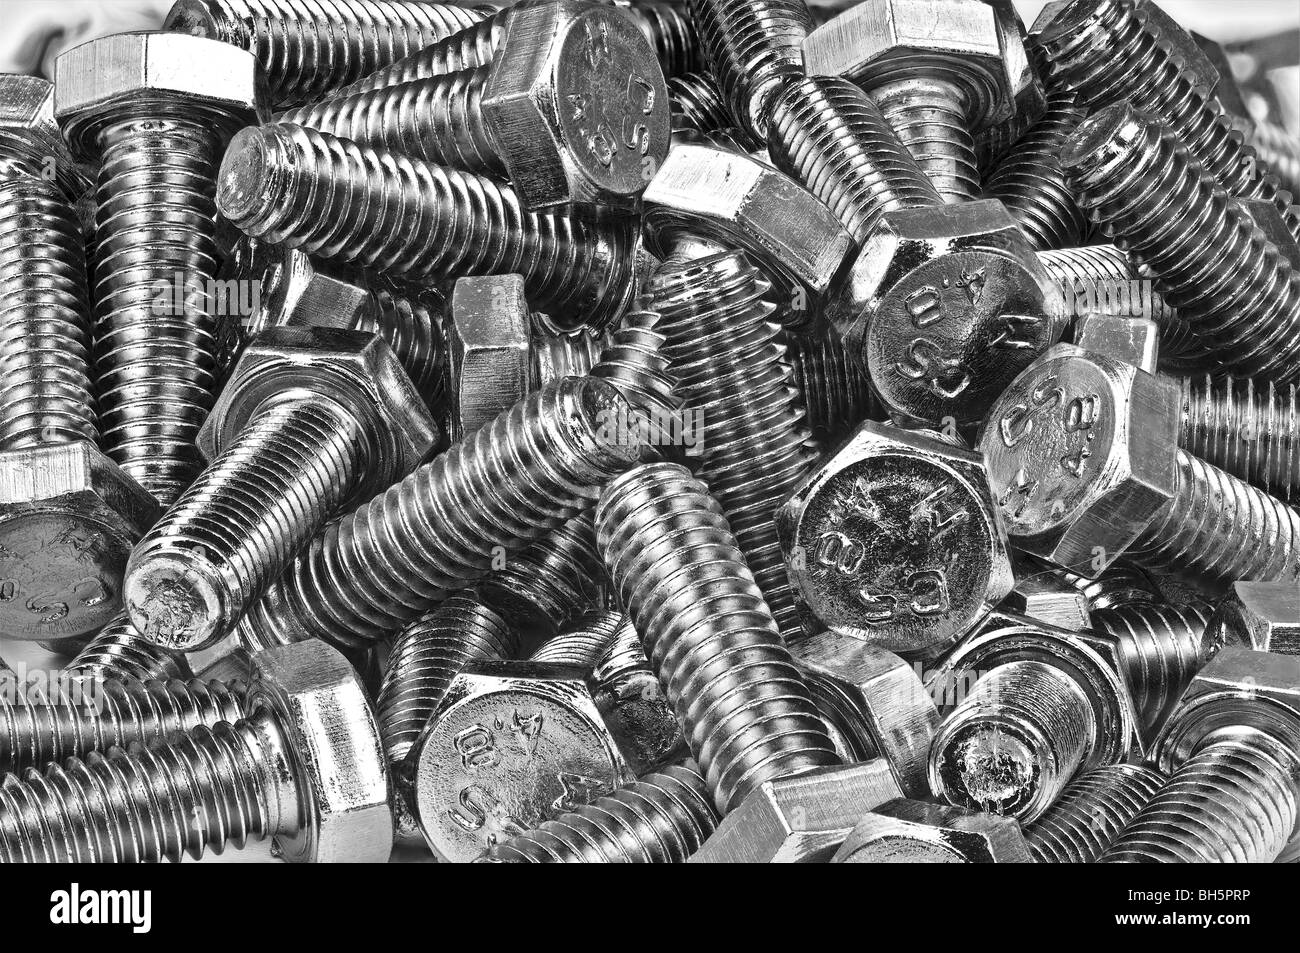 Bolts - Stock Image